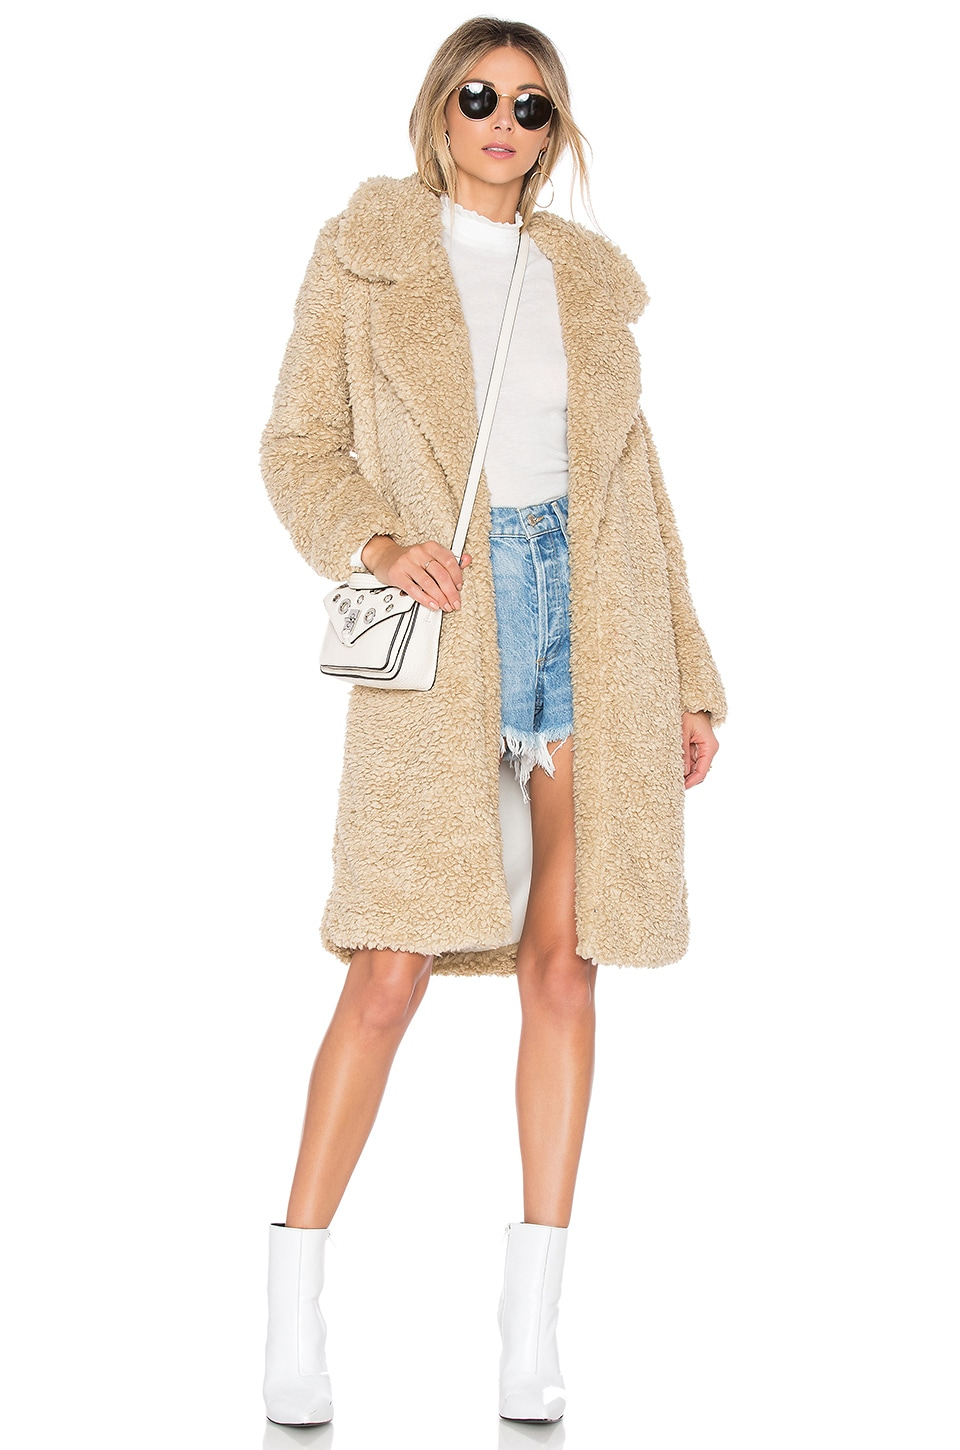 Tularosa Long Violet Coat in Beige